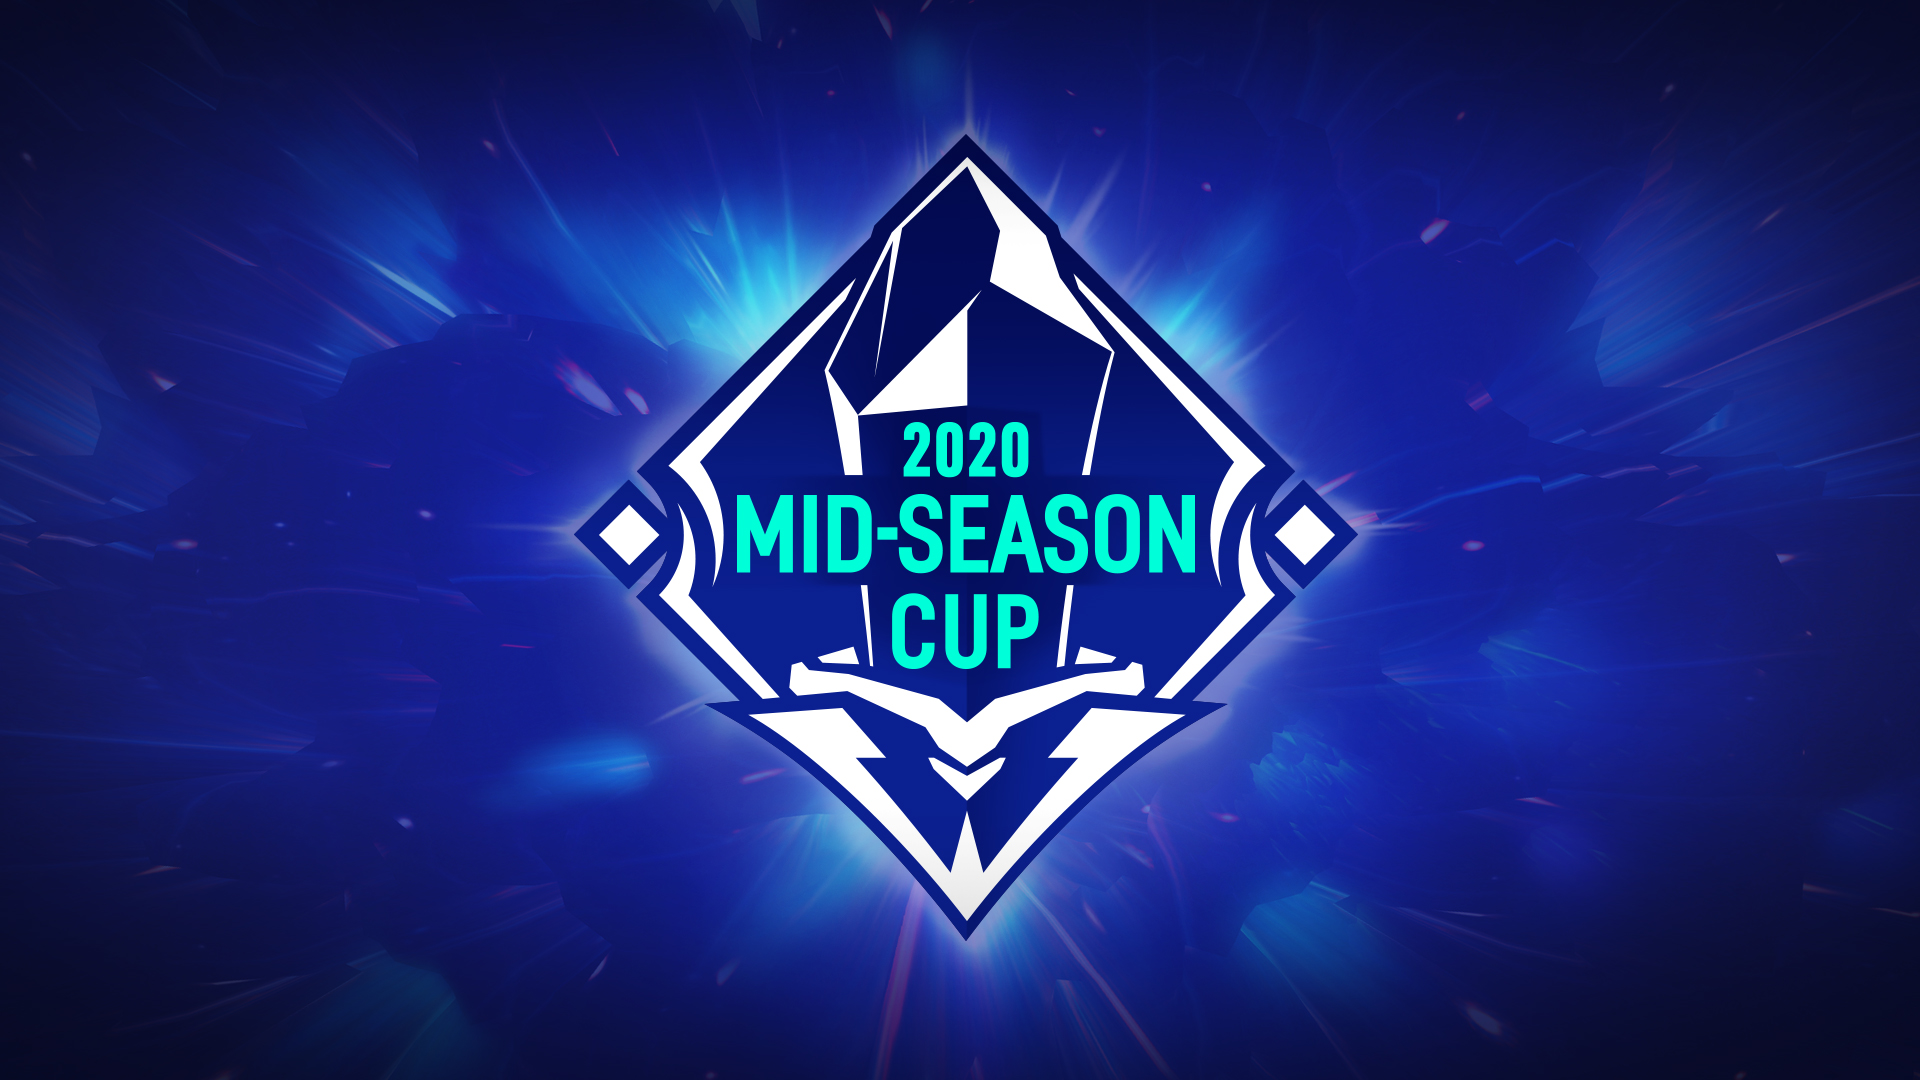 Mid-Season Cup scores and standings